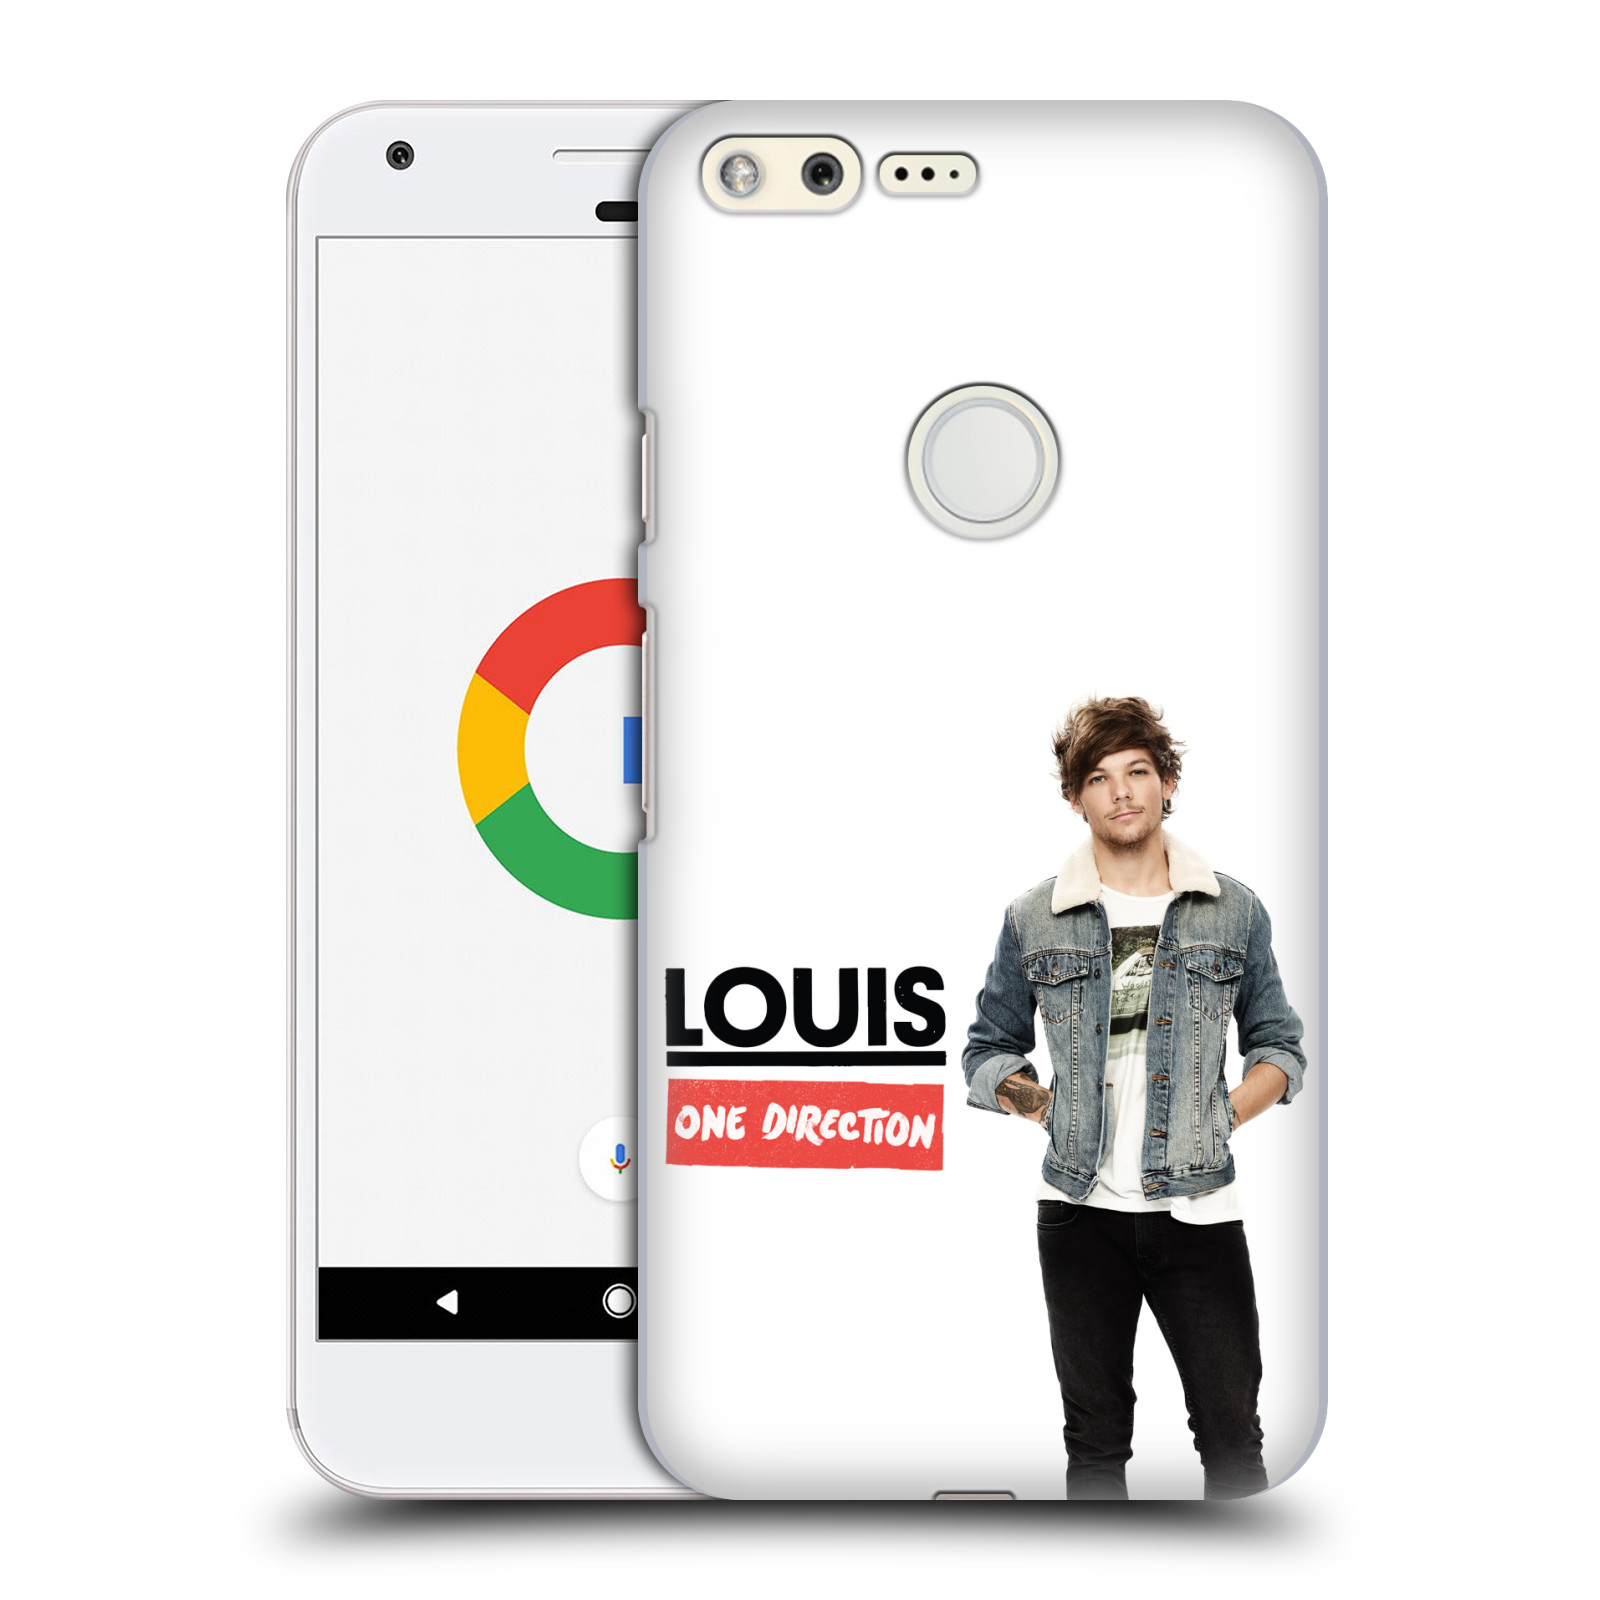 official one direction louis tomlinson photo hard back